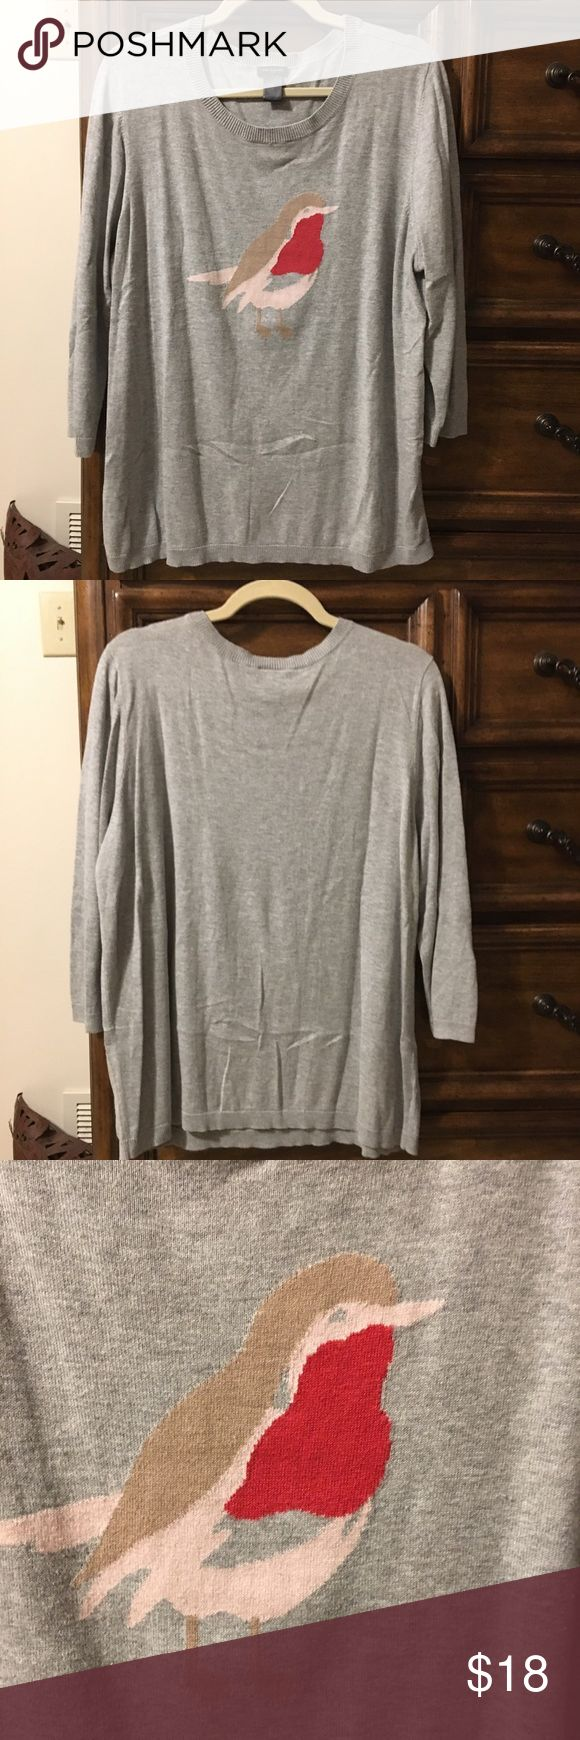 Size XL Bird Sweater by Ann Taylor VGUC, second owner. Lightweight sweater knit with lovely bird on the front. No picks, pulls or tears. Price is firm, please bundle for discount. Ann Taylor Sweaters Crew & Scoop Necks